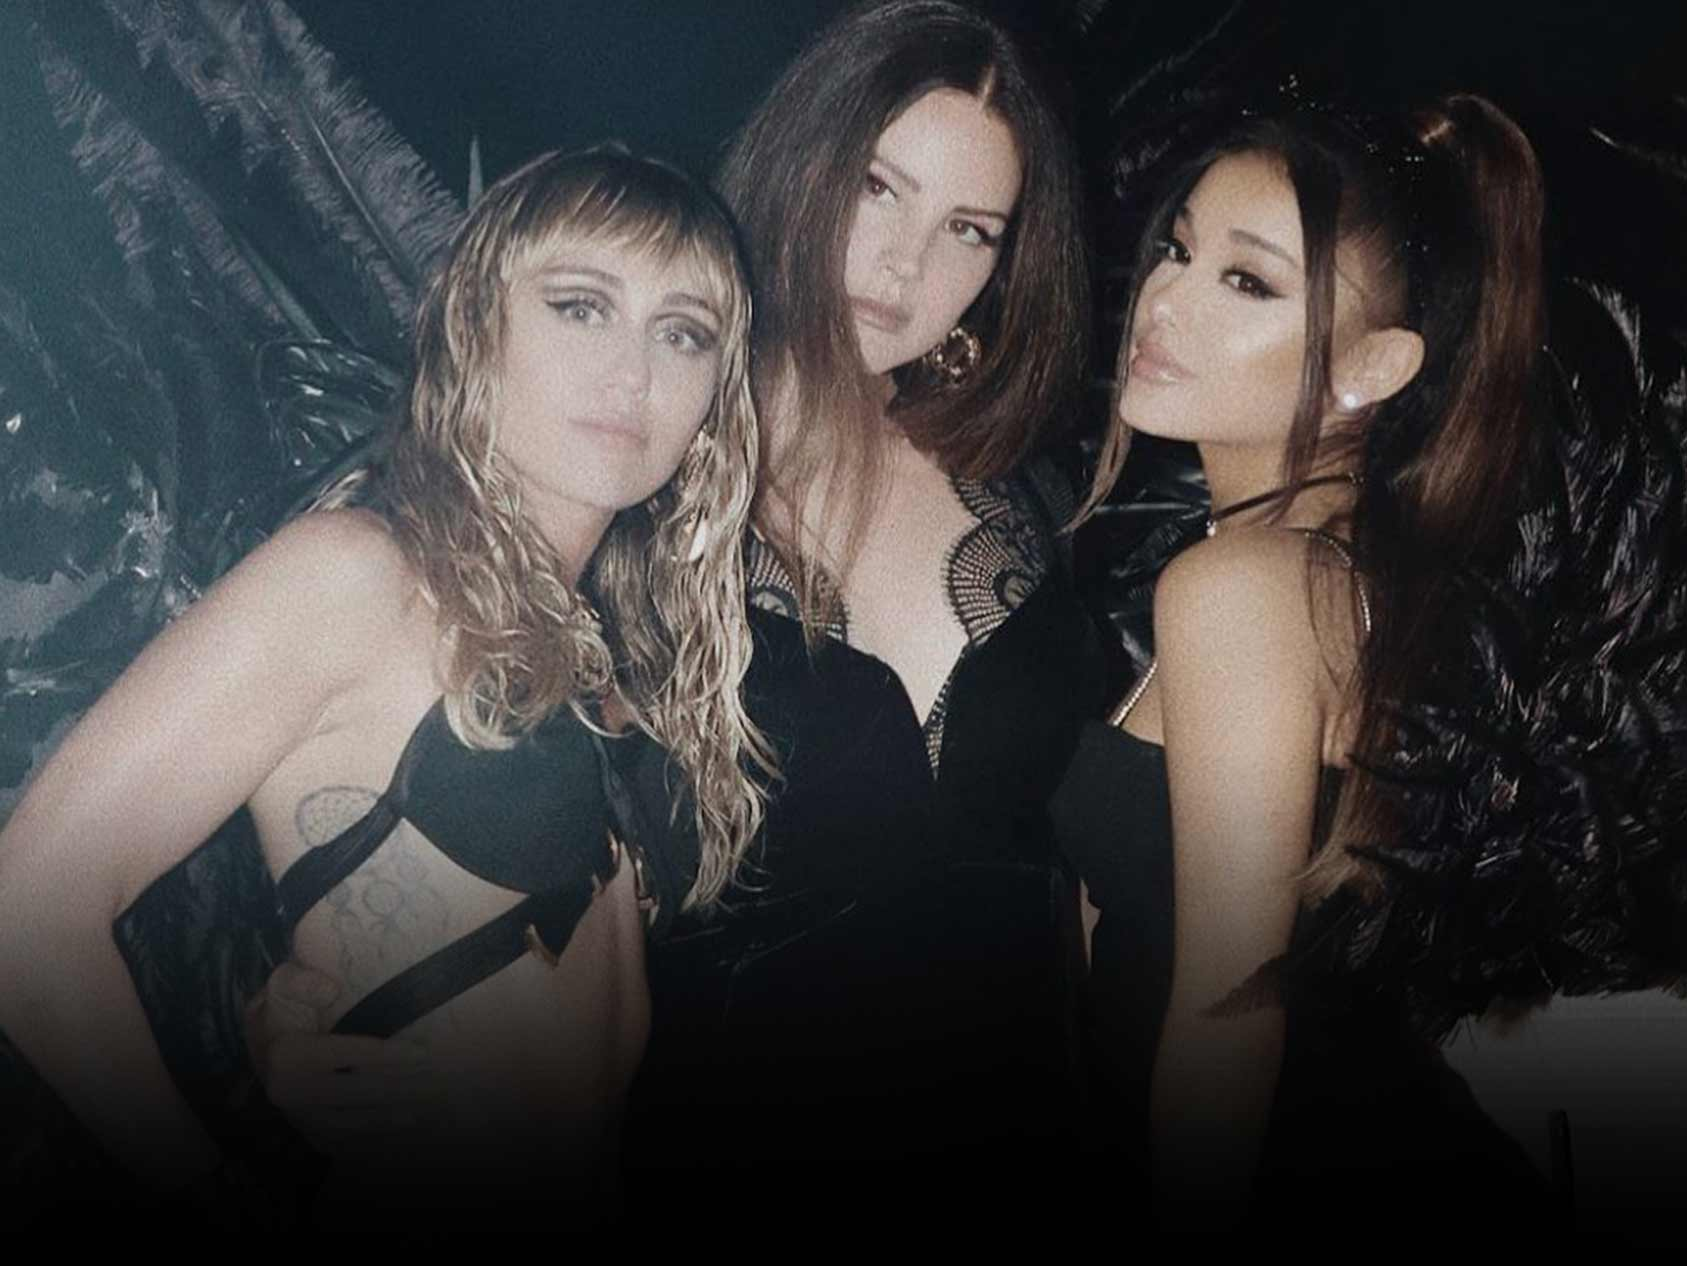 Ariana Grande, Miley Cyrus and Lana Del Rey Team Up For 'Don't Call Me Angel'